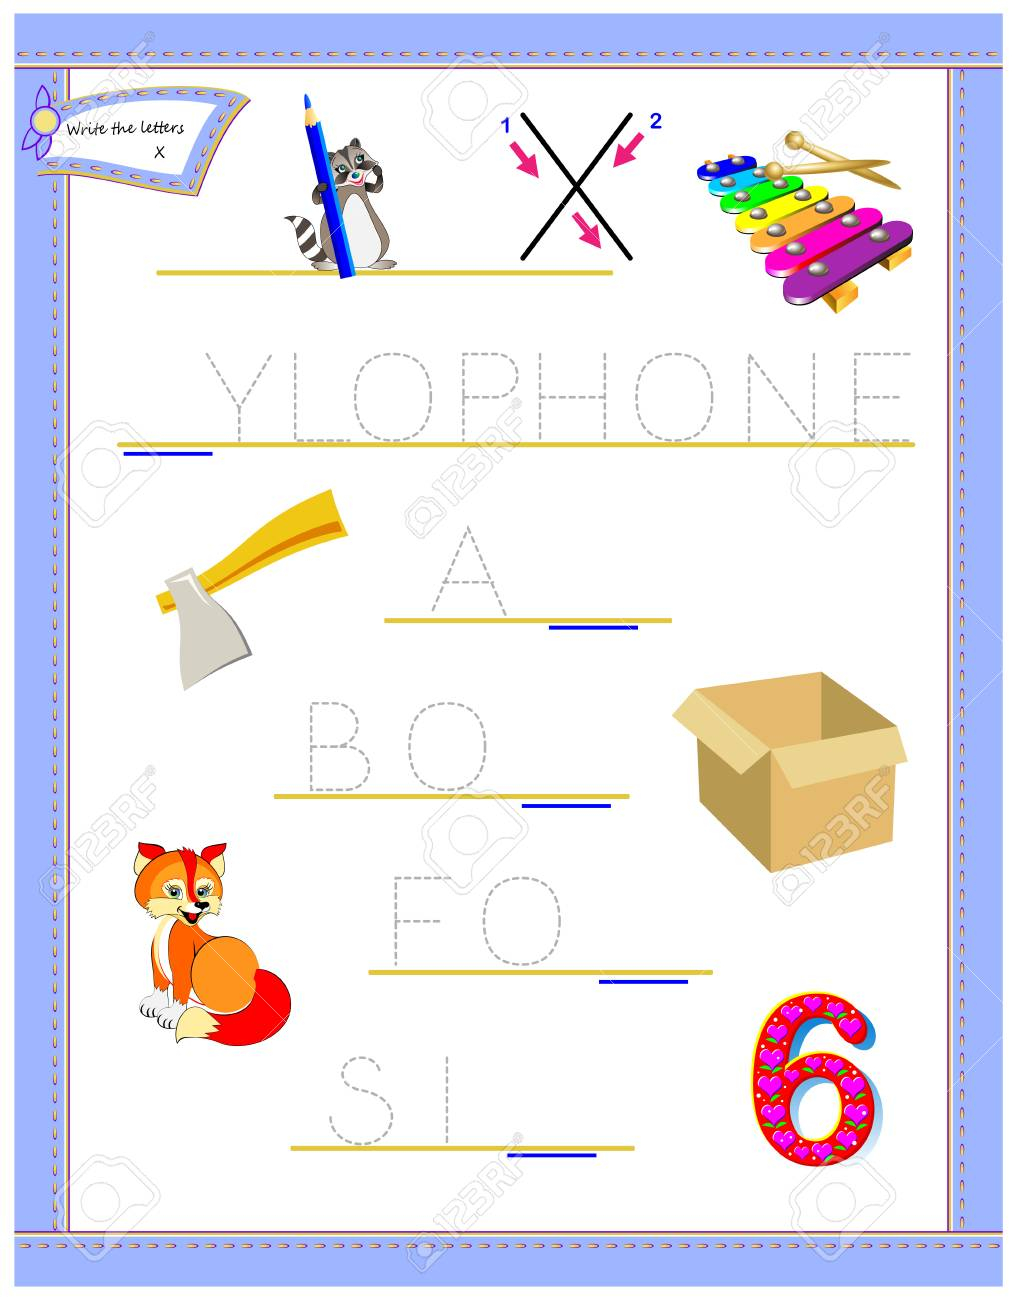 Tracing Letter X For Study English Alphabet. Printable Worksheet..